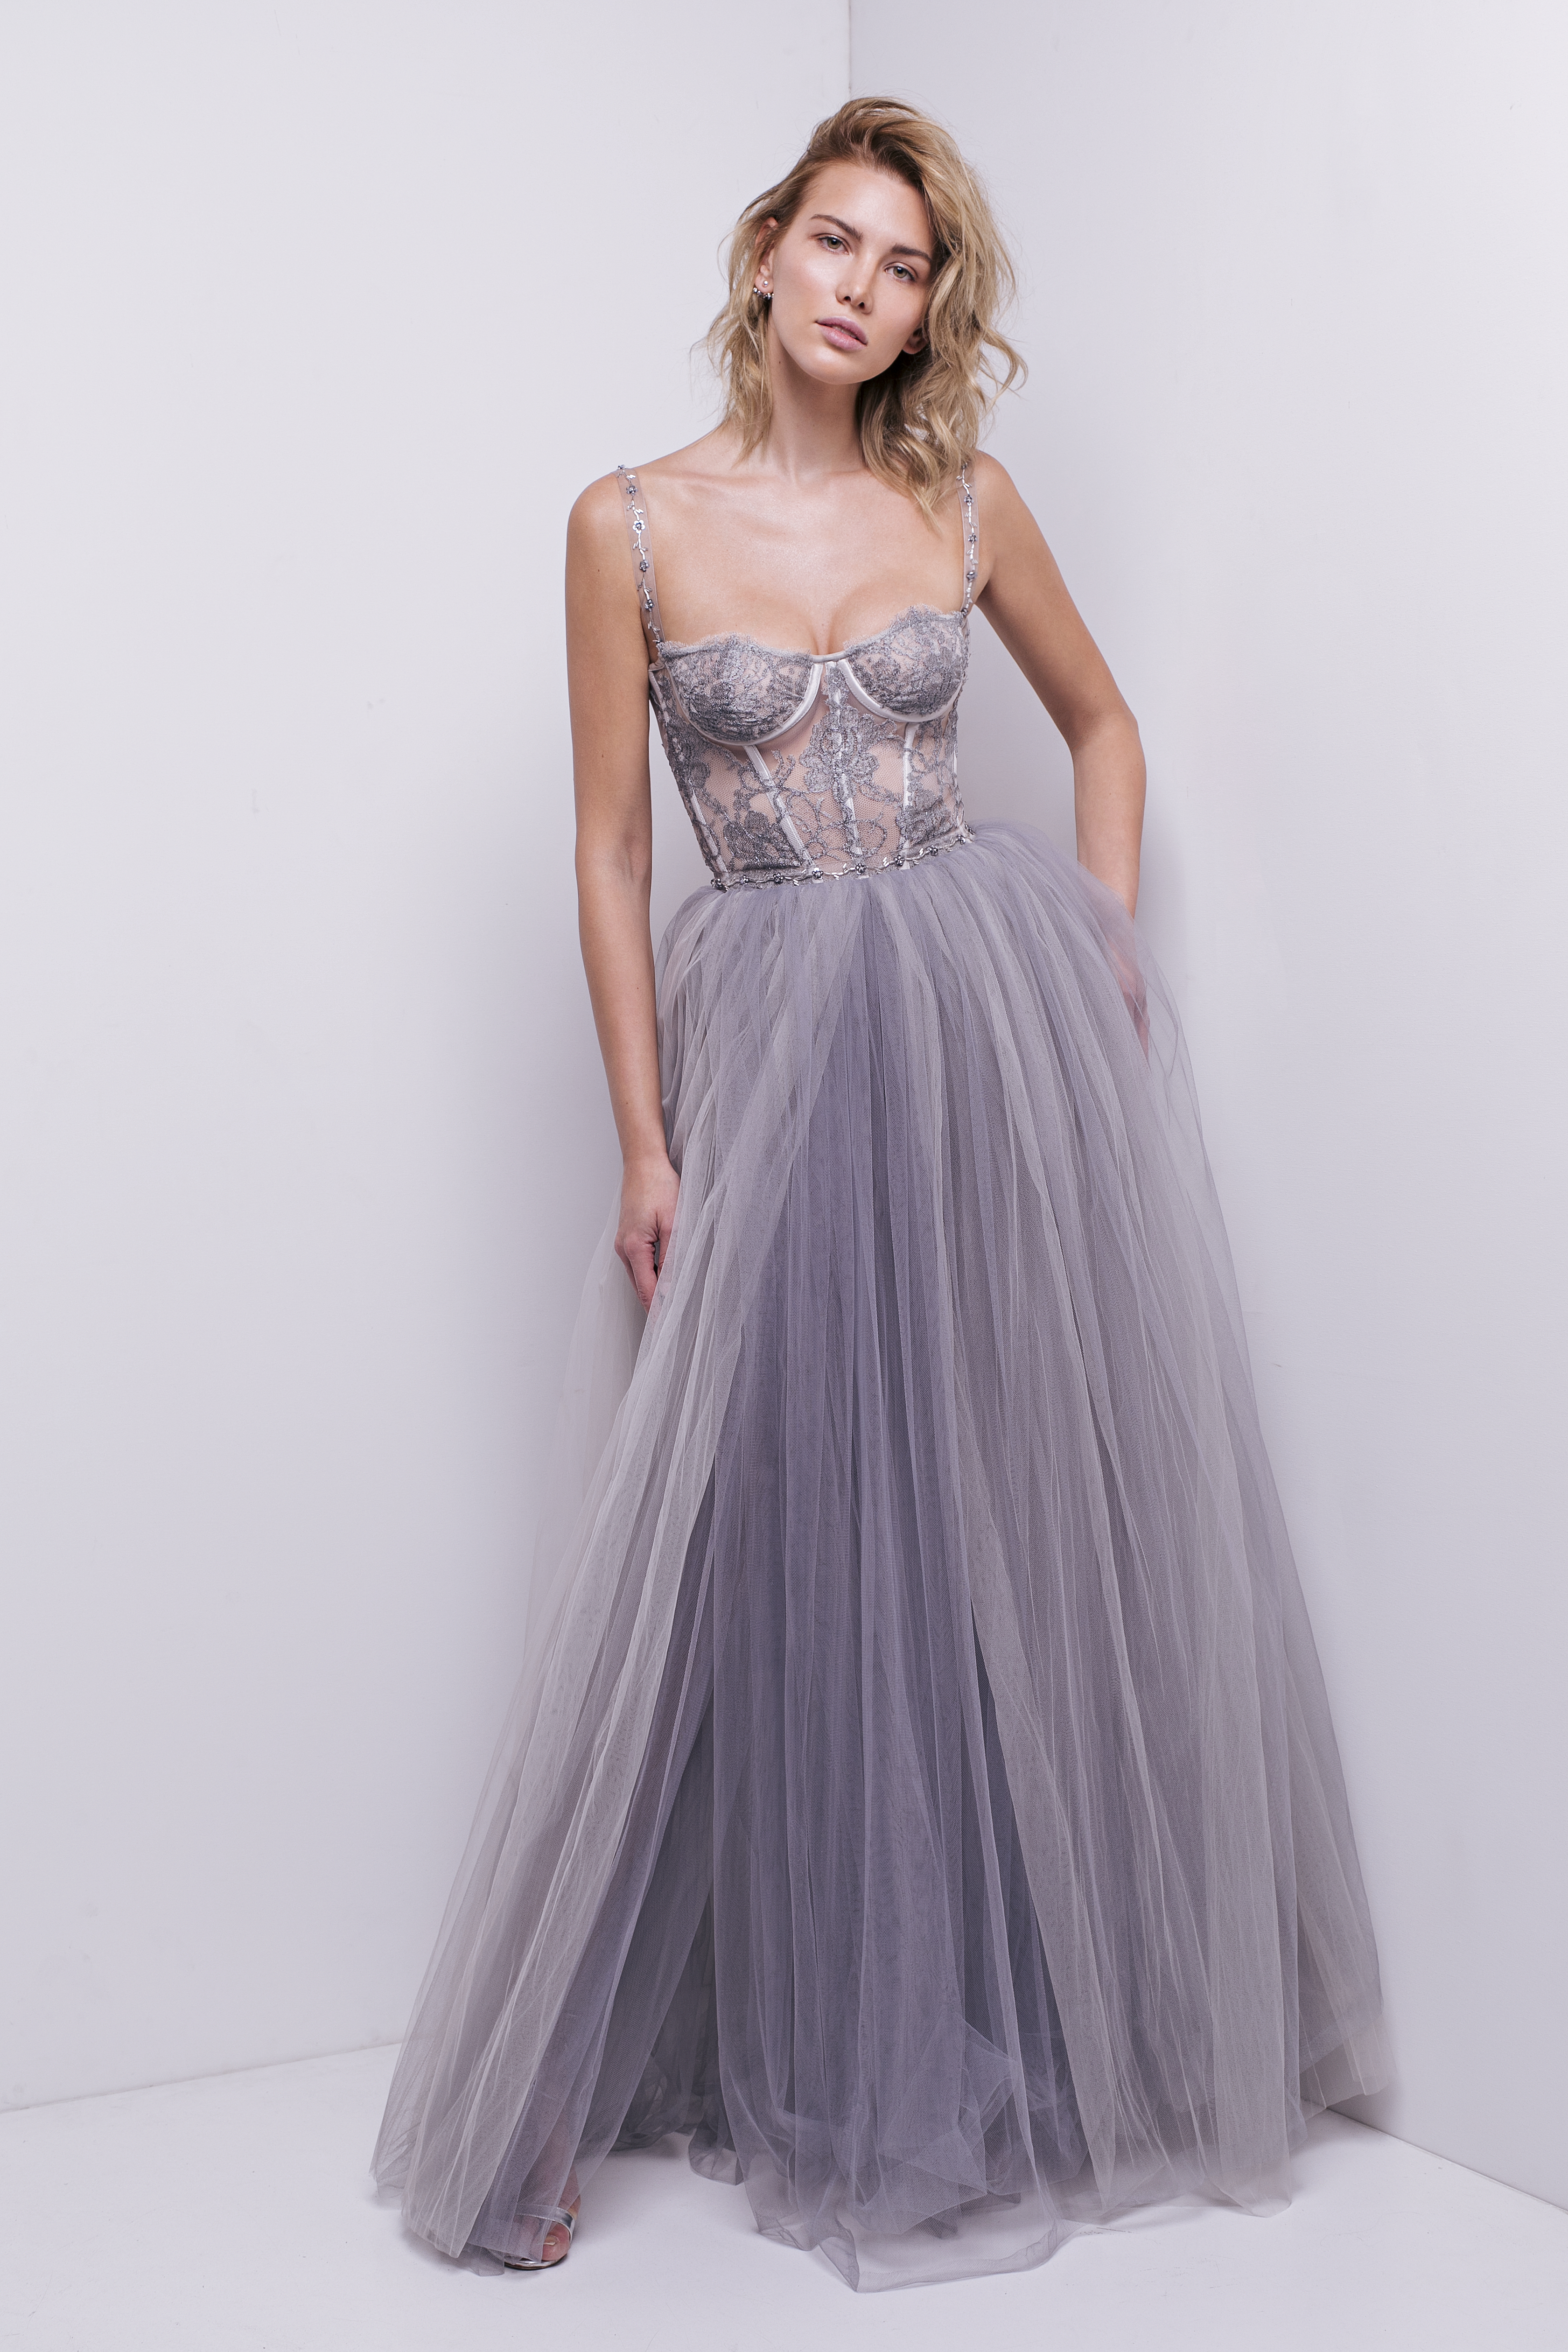 Beaded Tulle Prom Gown with Off-the-Shoulder Cap Sleeves